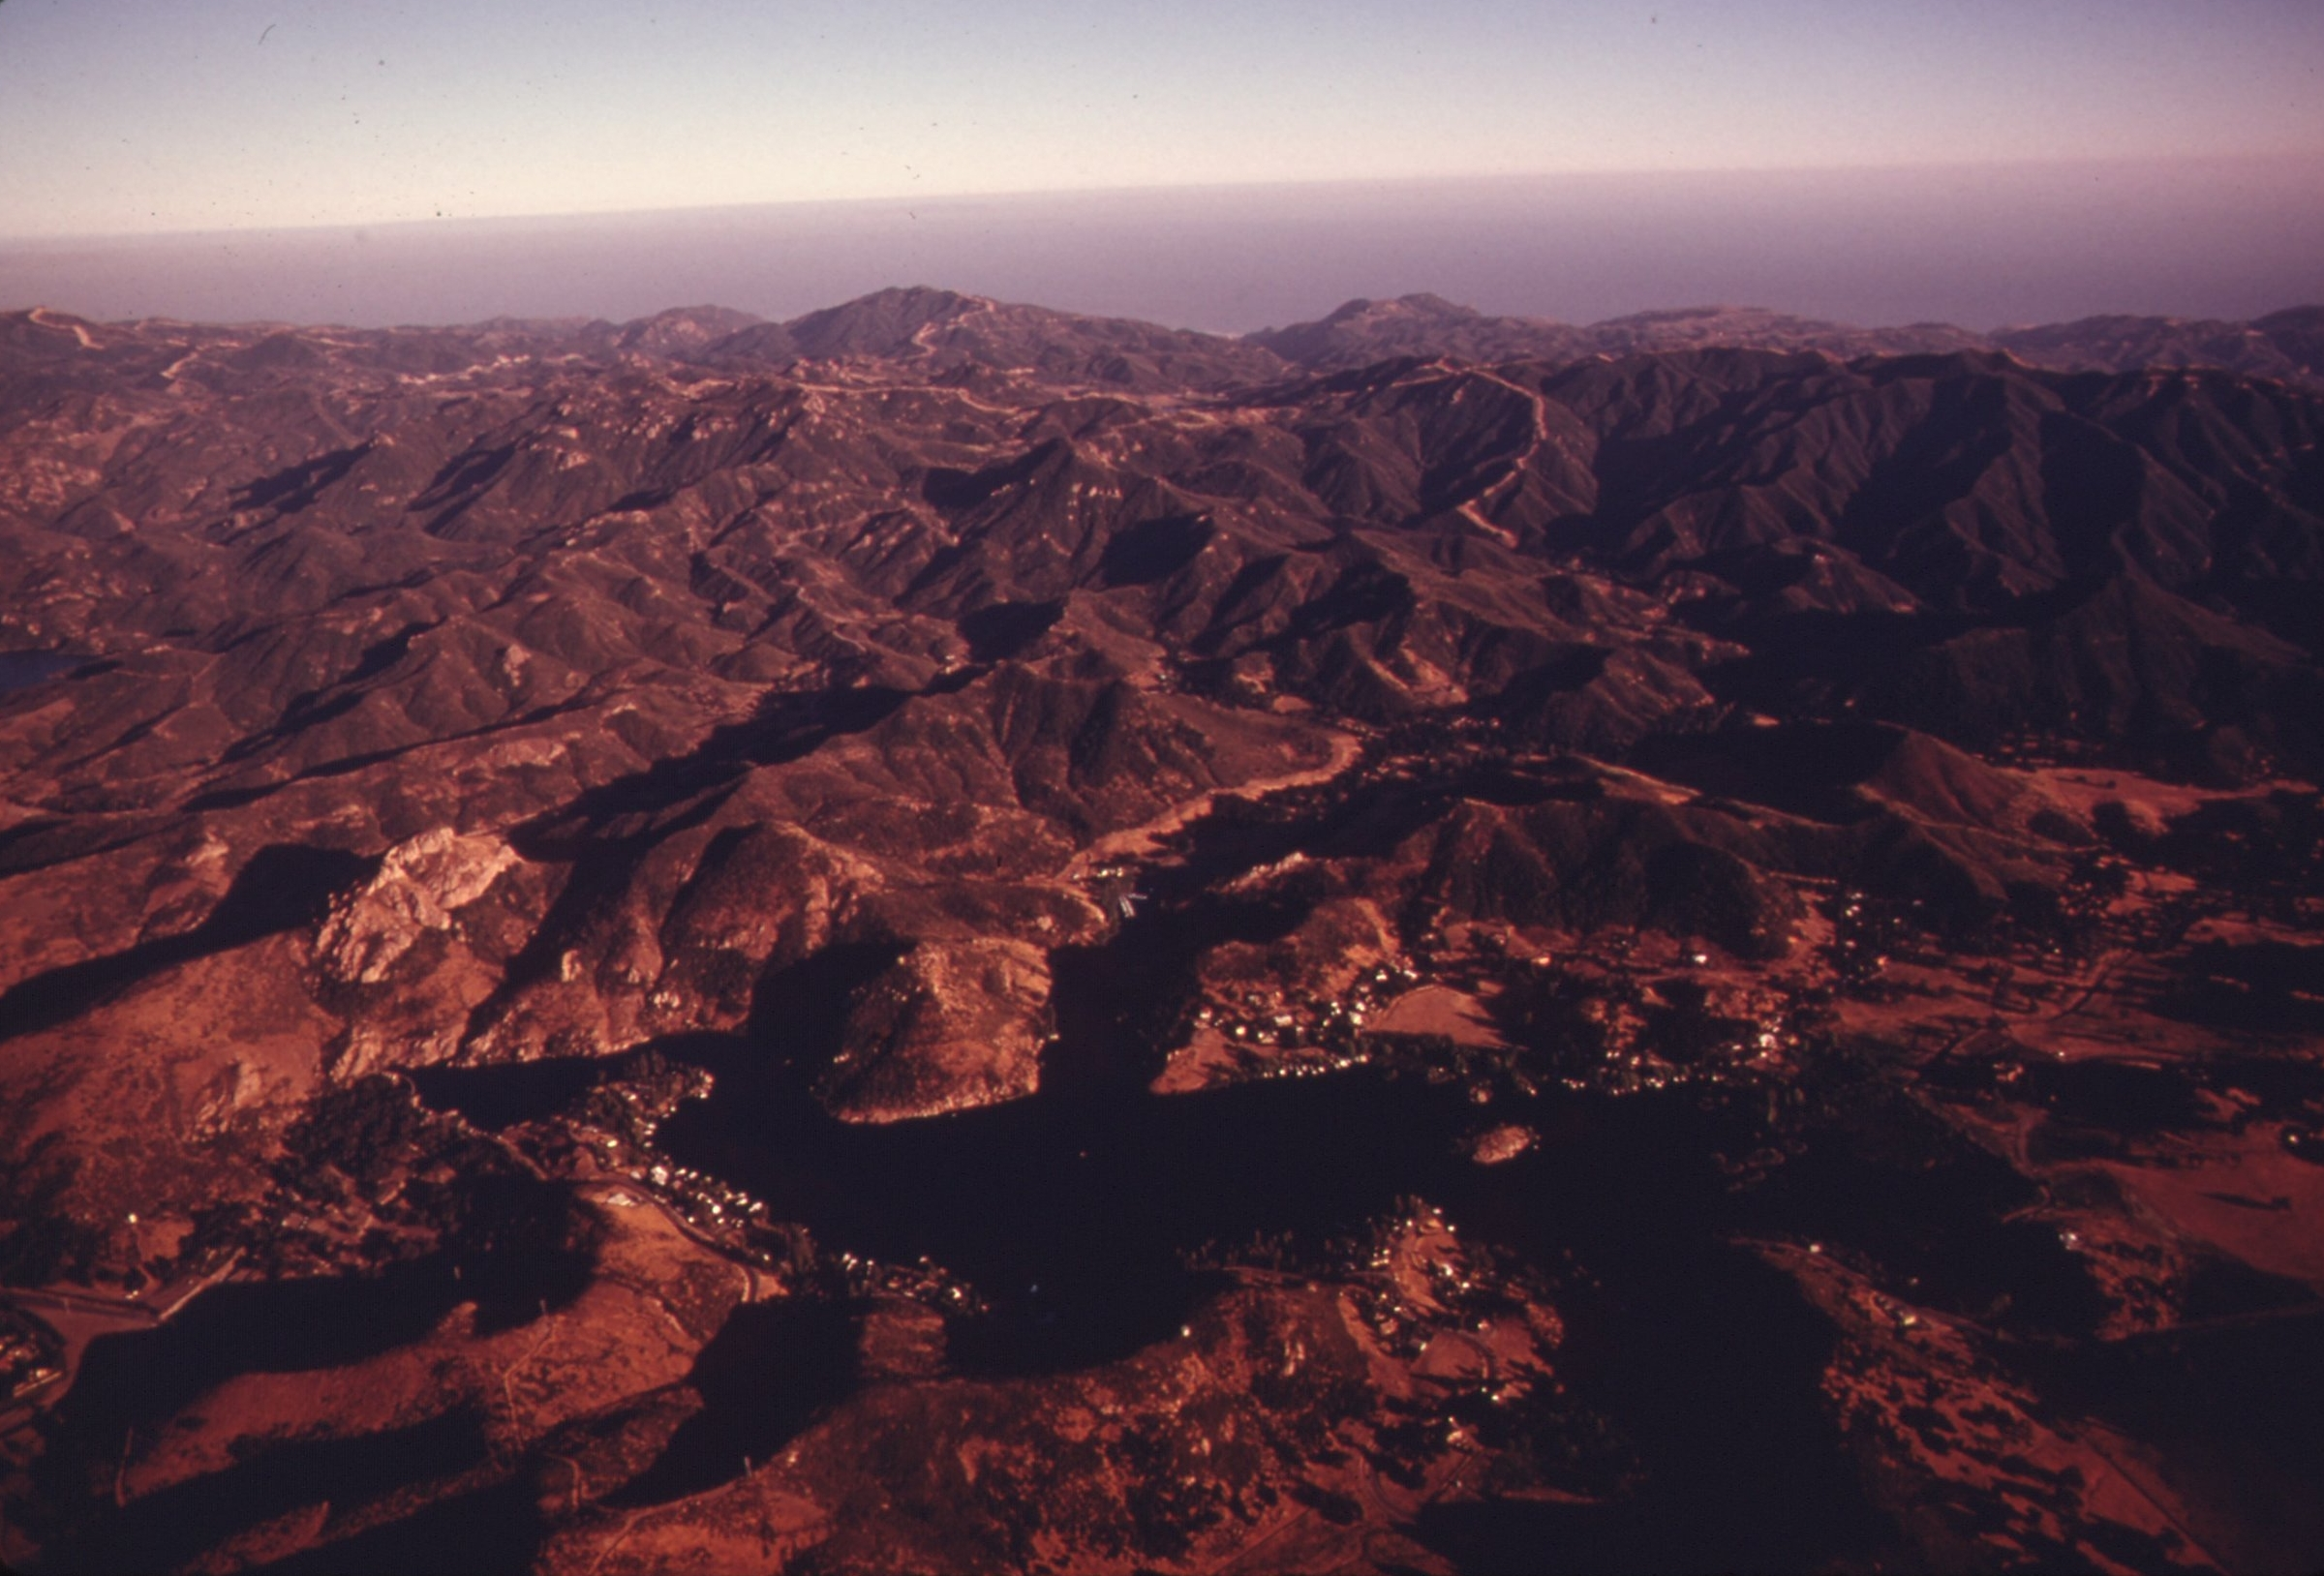 AERIAL_OF_THE_SANTA_MONICA_MOUNTAINS_LOOKING_SOUTH,_NEAR_MALIBU,_CALIFORNIA,_WHICH_IS_LOCATED_ON_THE_NORTHWESTERN..._-_NARA_-_557533.jpg